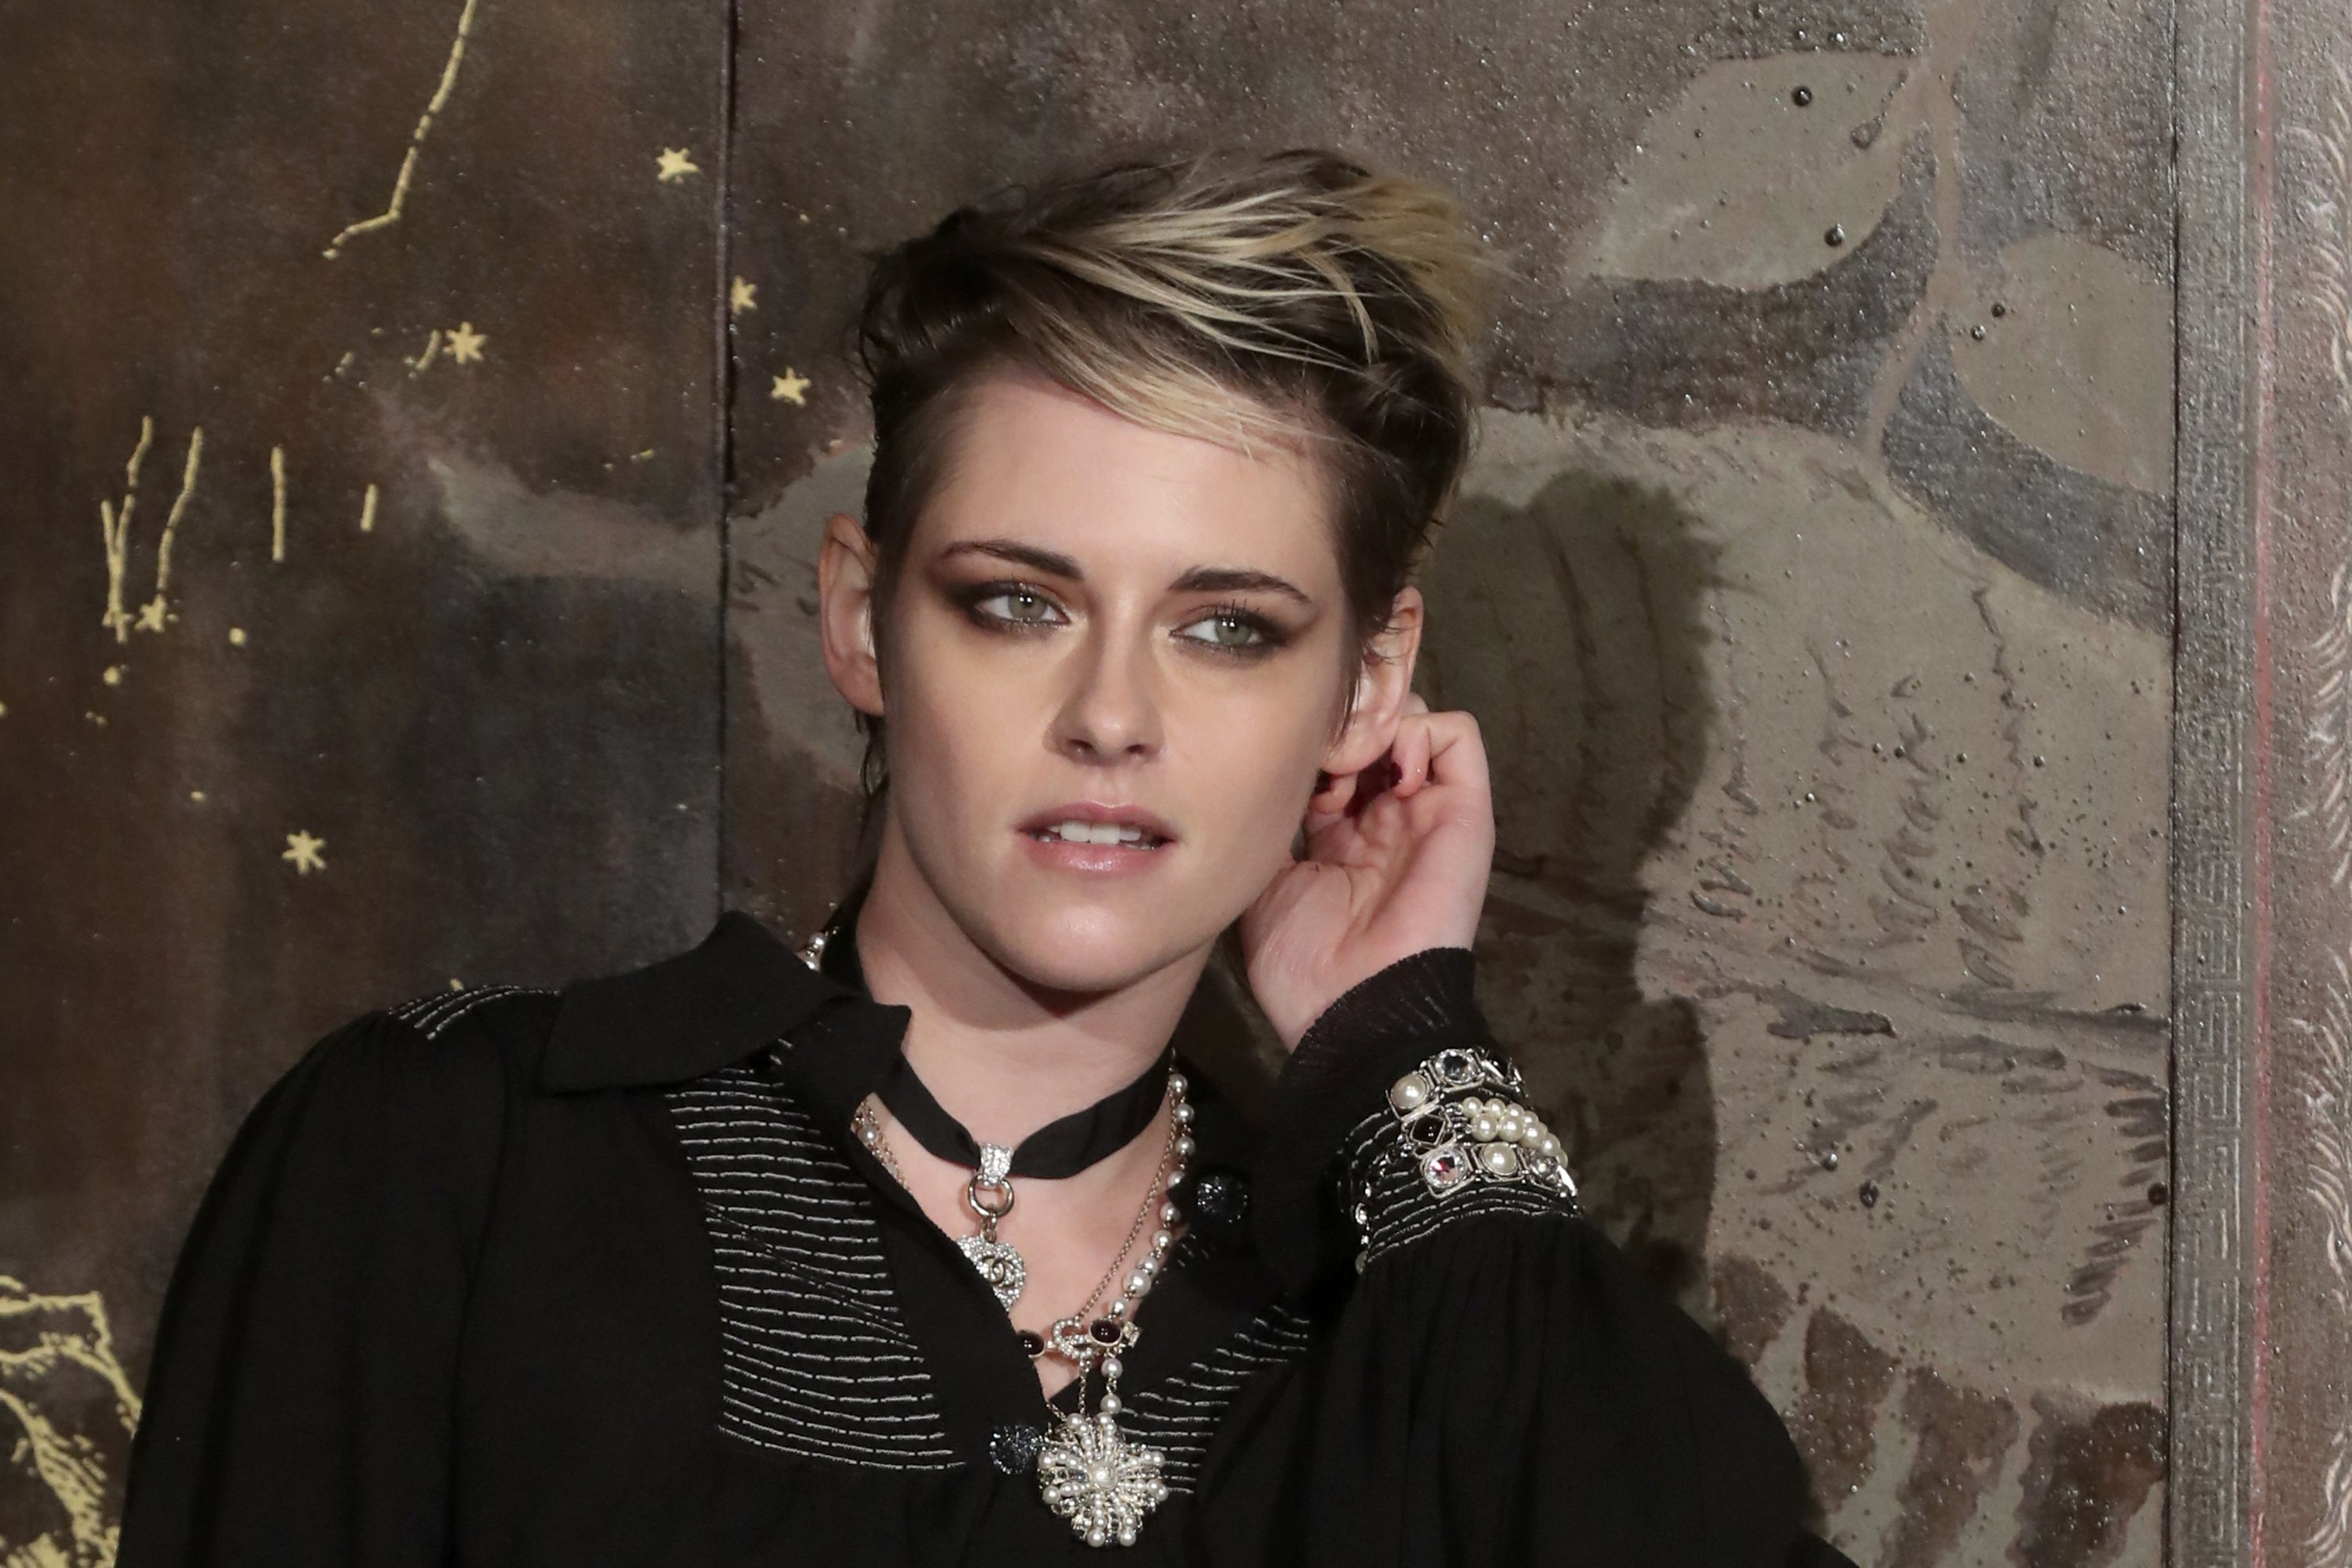 Actress Kristen Stewart poses during a photocall before the presentation of Chanel's Metiers d'Art collection at the Grand Palais, Paris, France, Dec. 4, 2019. (AP Photo)